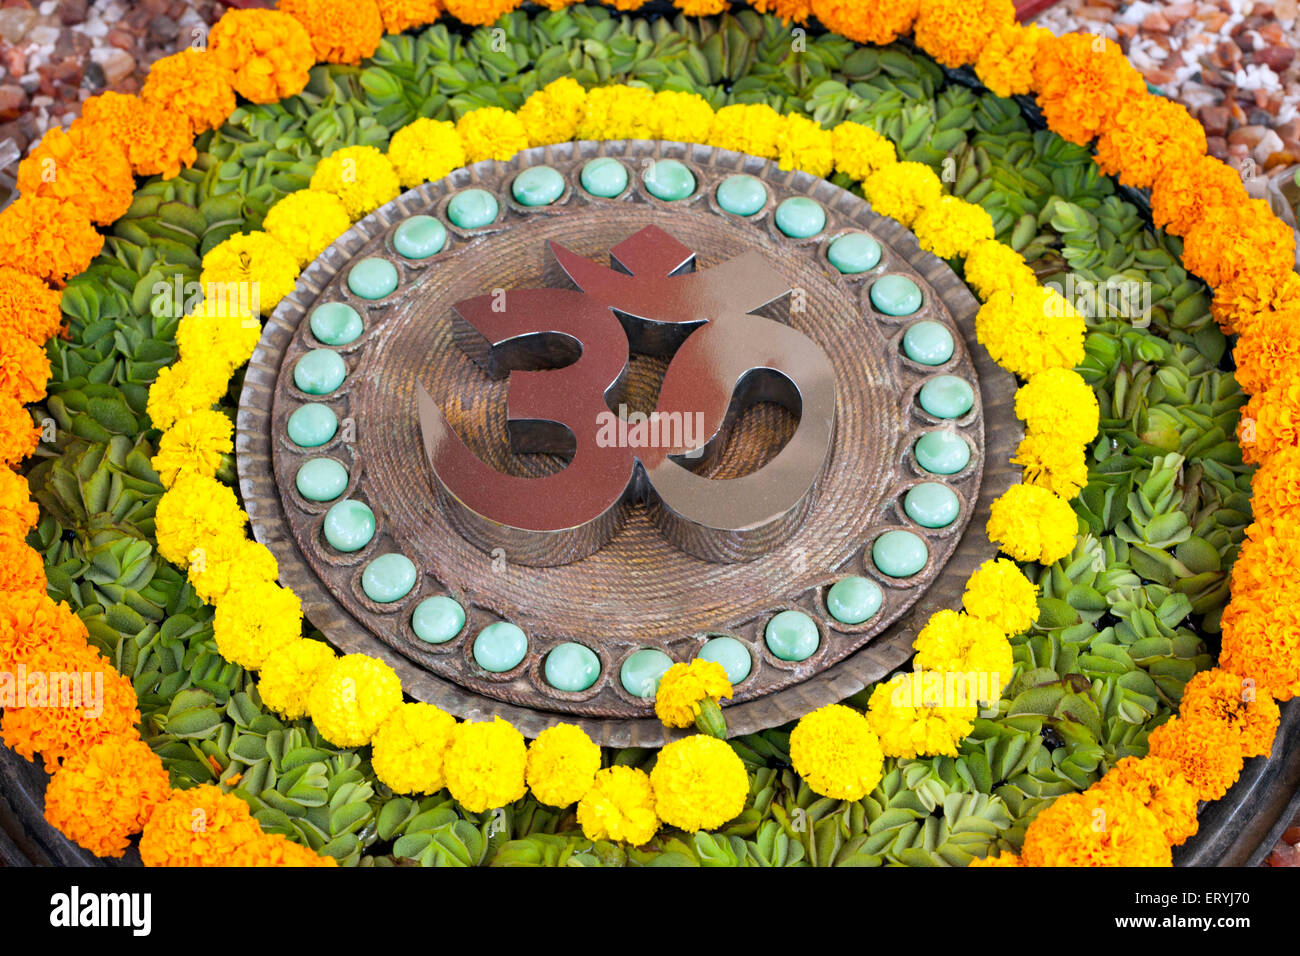 Om design pebbles flowers concentric circle India Asia - Stock Image